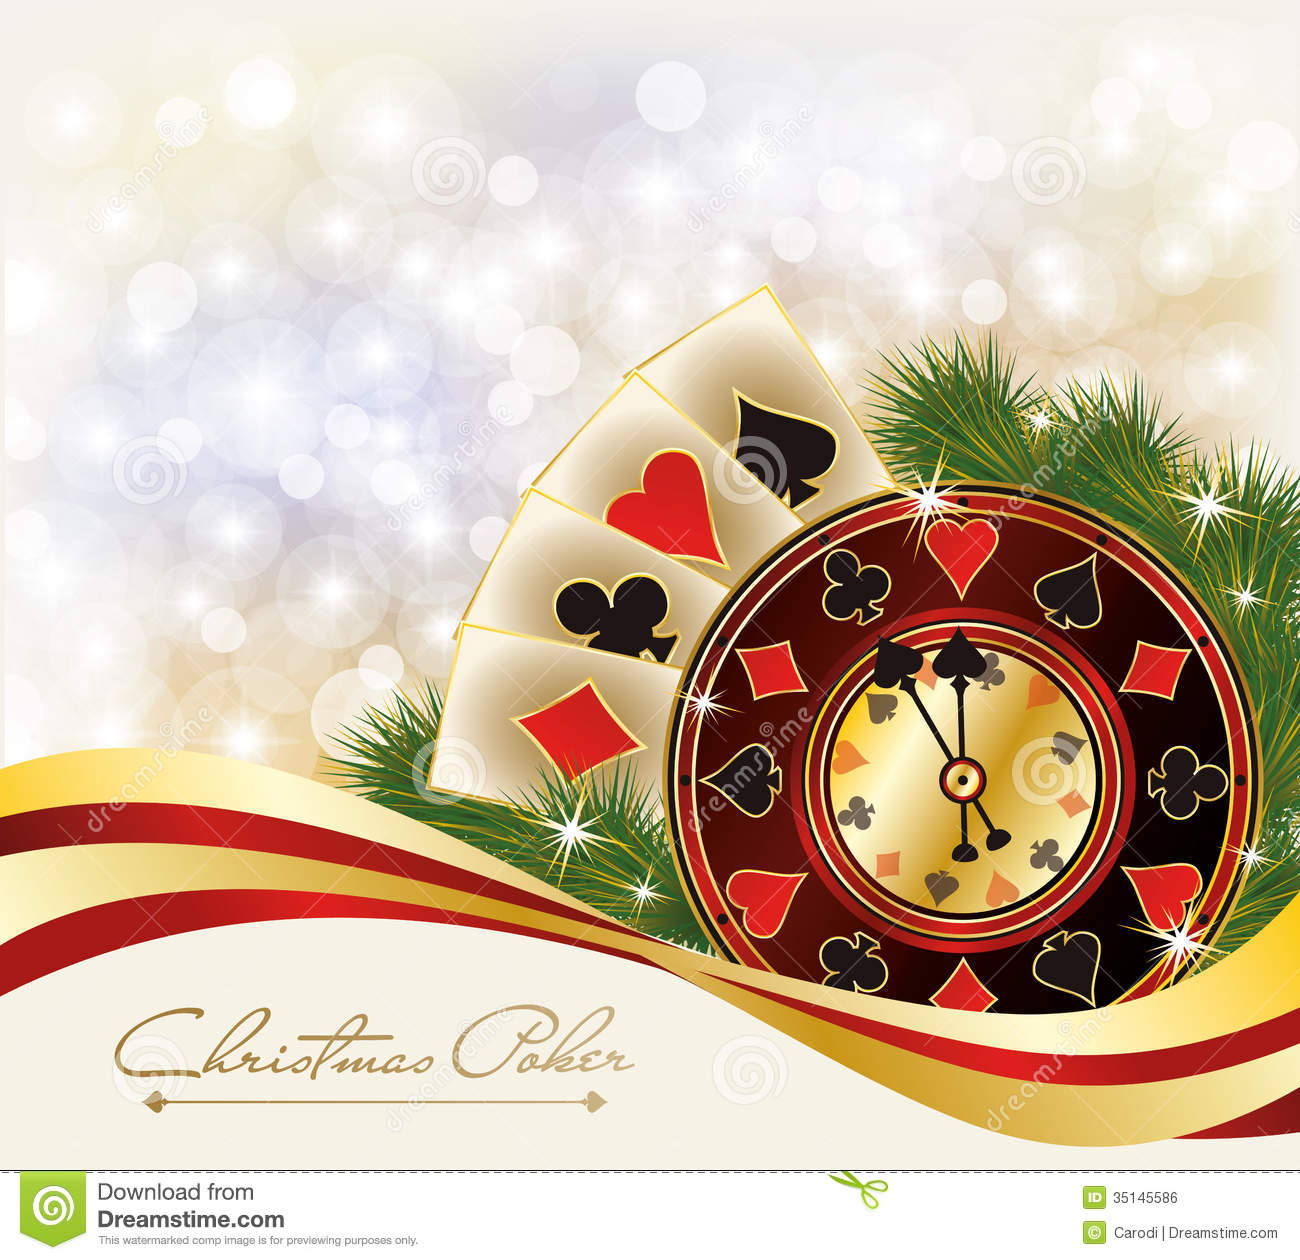 free online casino games no registration no download